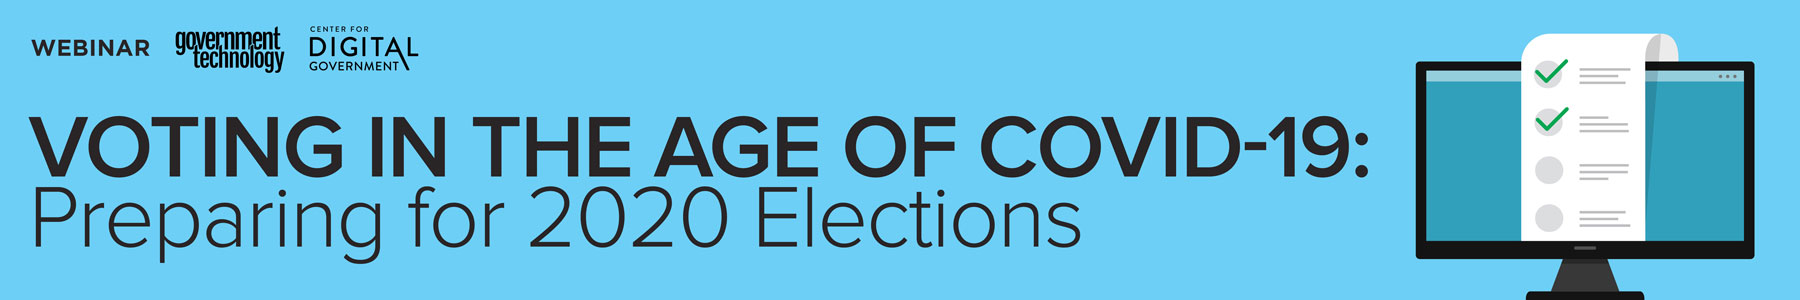 Voting in the Age of COVID-19: Preparing for 2020 Elections